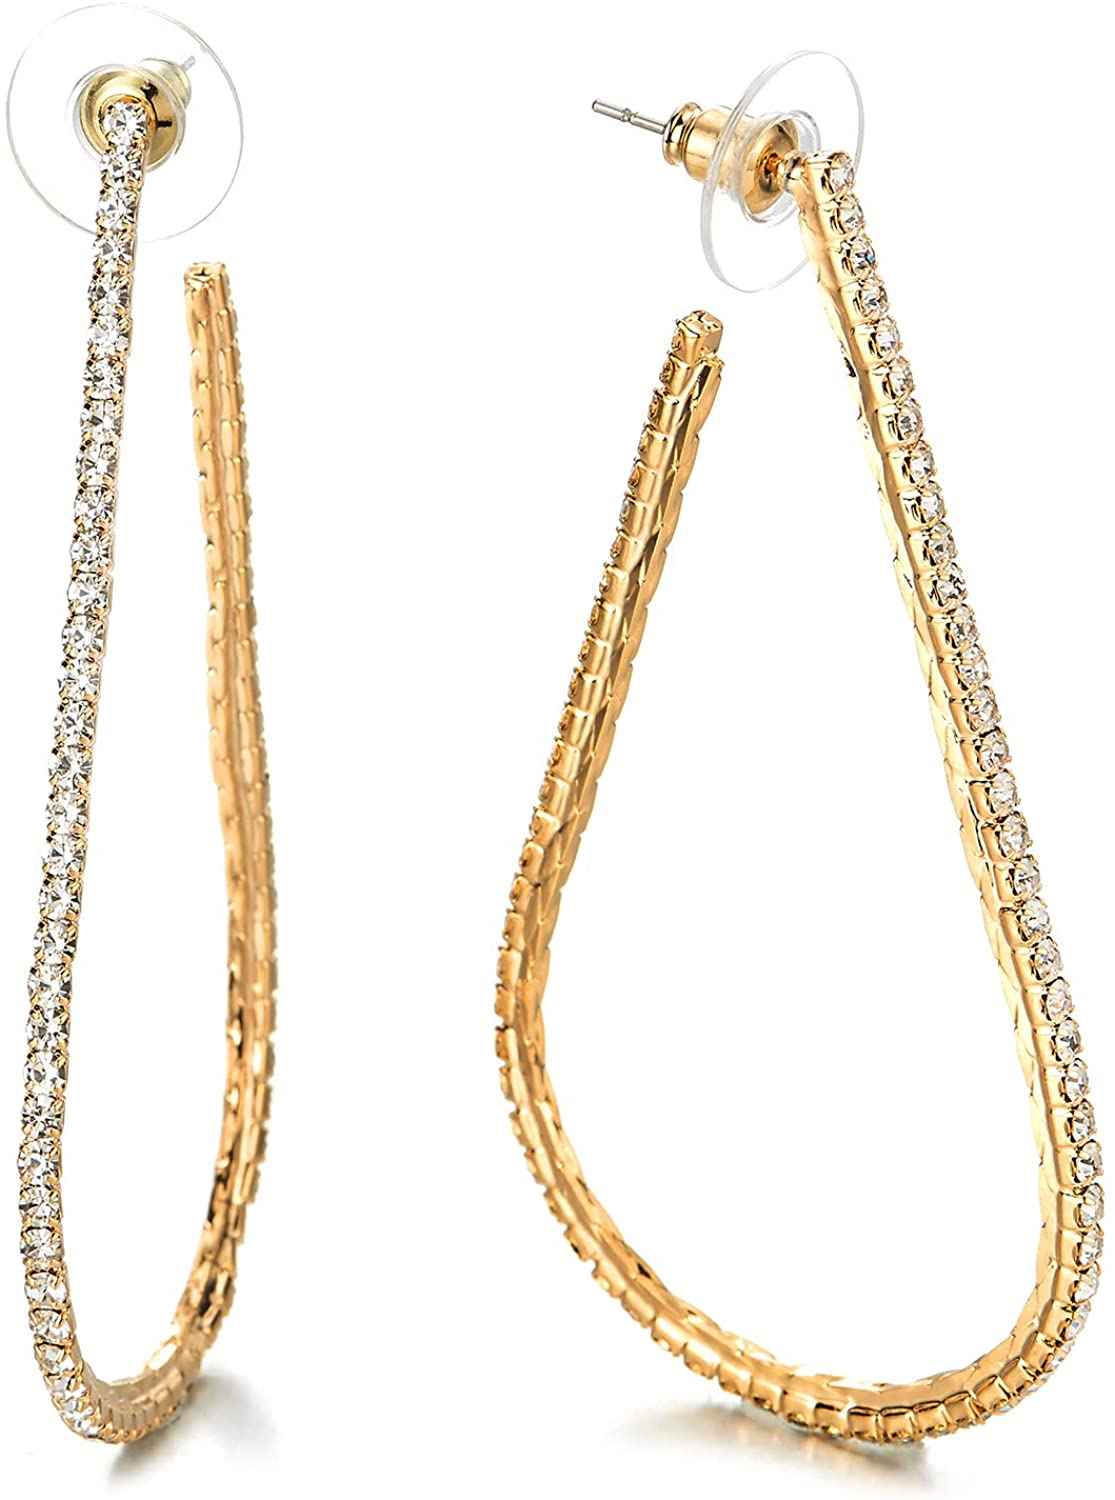 Large Gold Color Teardrop Statement Huggie Hinged Hoop Earrings with Rhinestones Fashion Bridal Prom